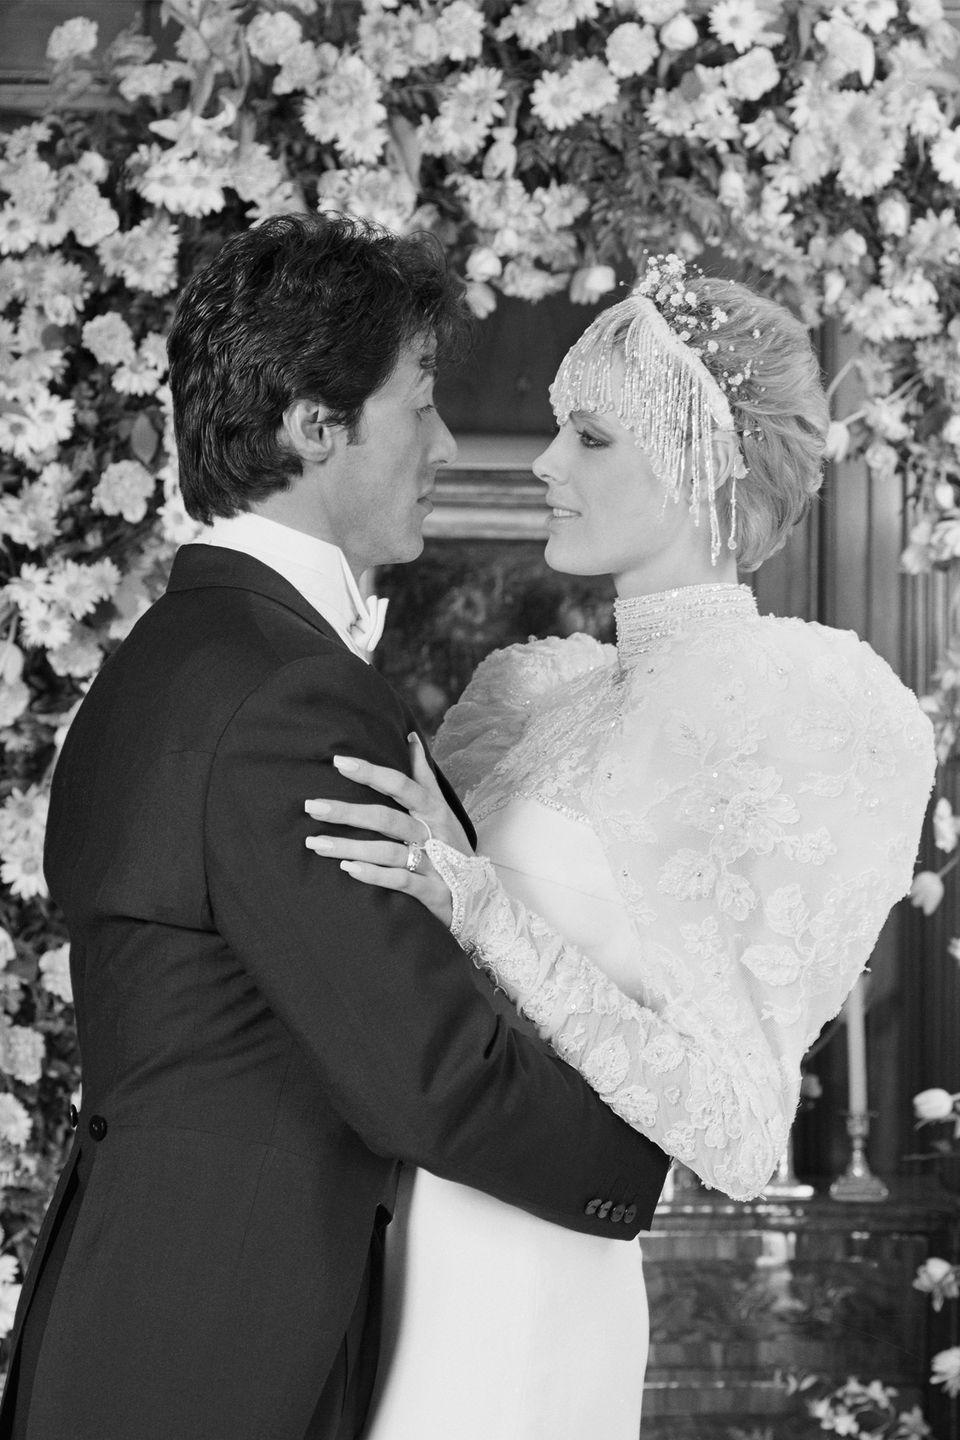 <p>No one did '80s glam better than Brigitte Nielson, especially at her wedding to Sylvester Stallone in December 1985. She designed the long-sleeved gown herself and added a statement-making beaded headdress on top.</p>